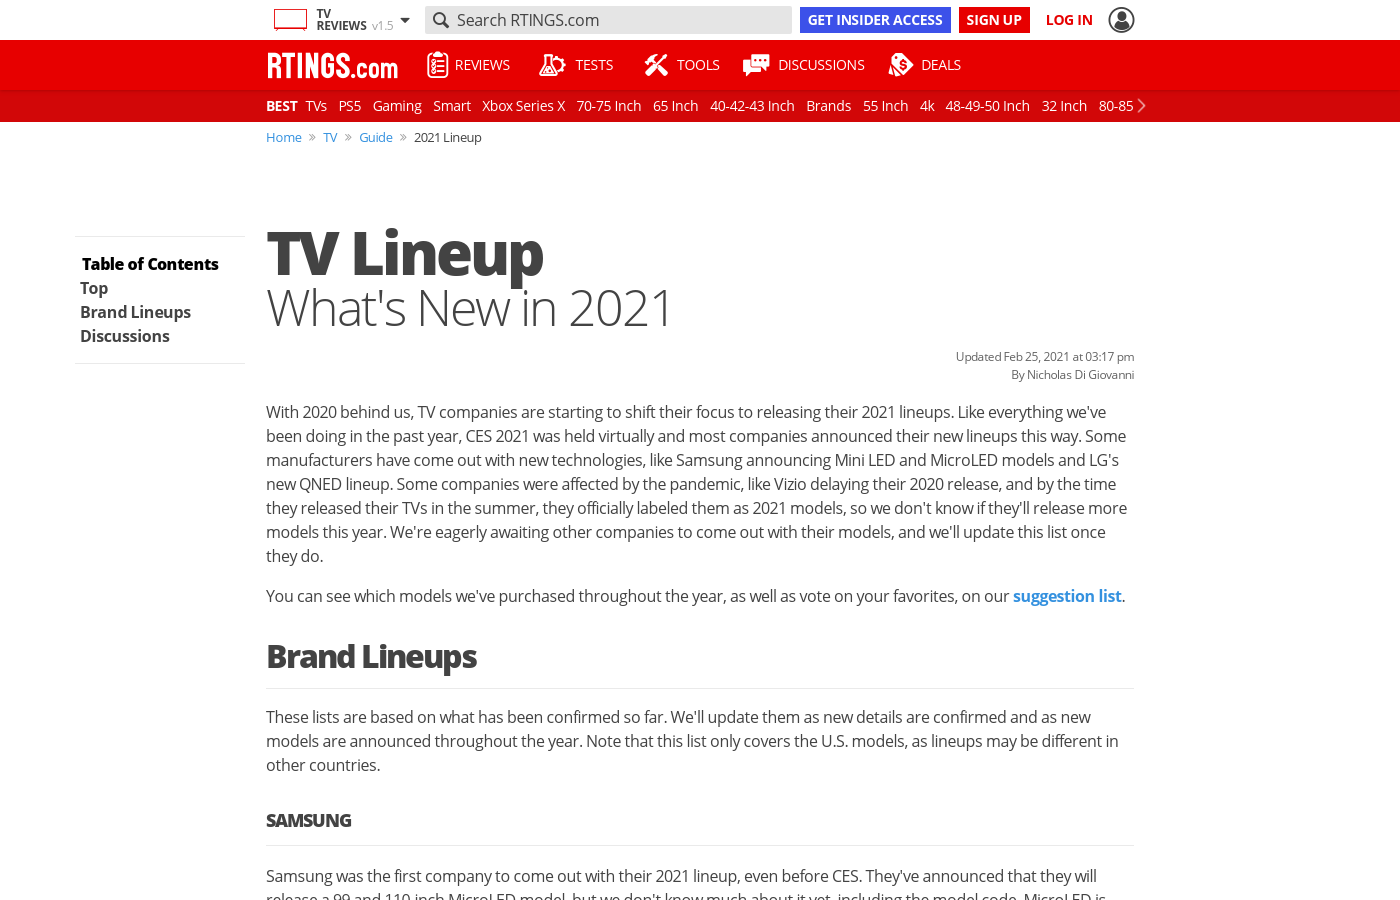 TV Lineup: What's New in 2021